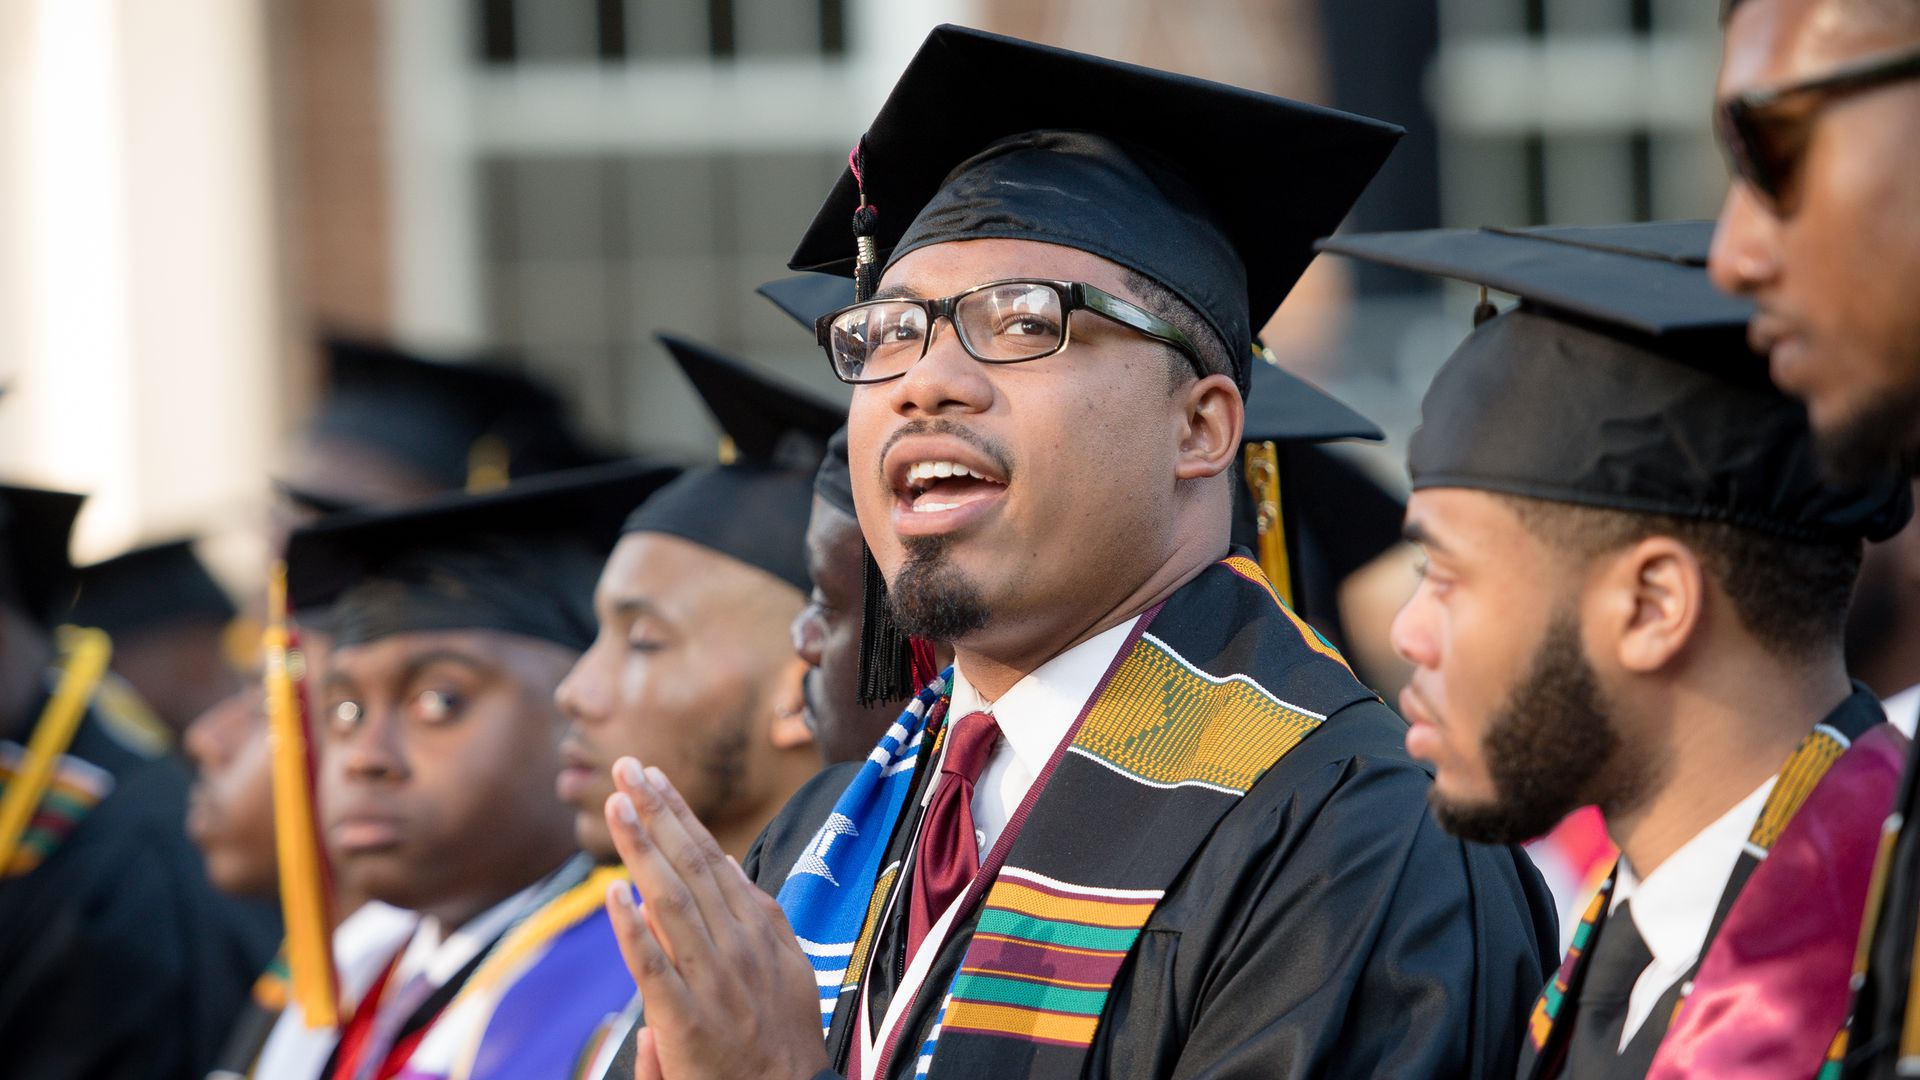 Morehouse College debt relief highlights a broken system for black students in higher ed